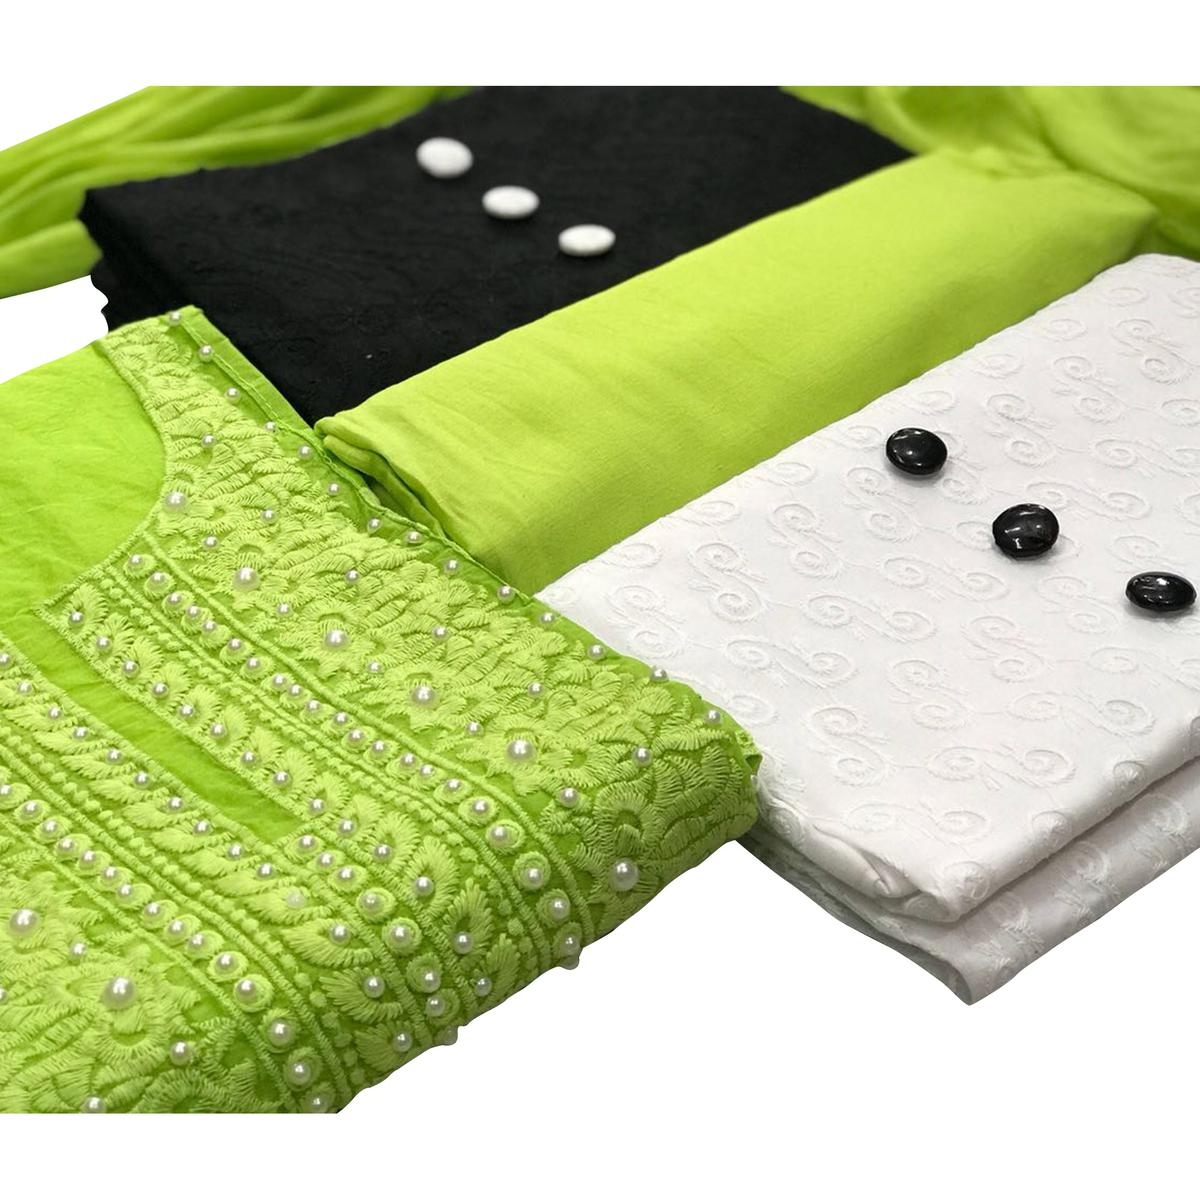 Modal-Cotton Dress Material : Pack Of 3 Tops (Green-Black-White) With 1 Bottom & Dupatta